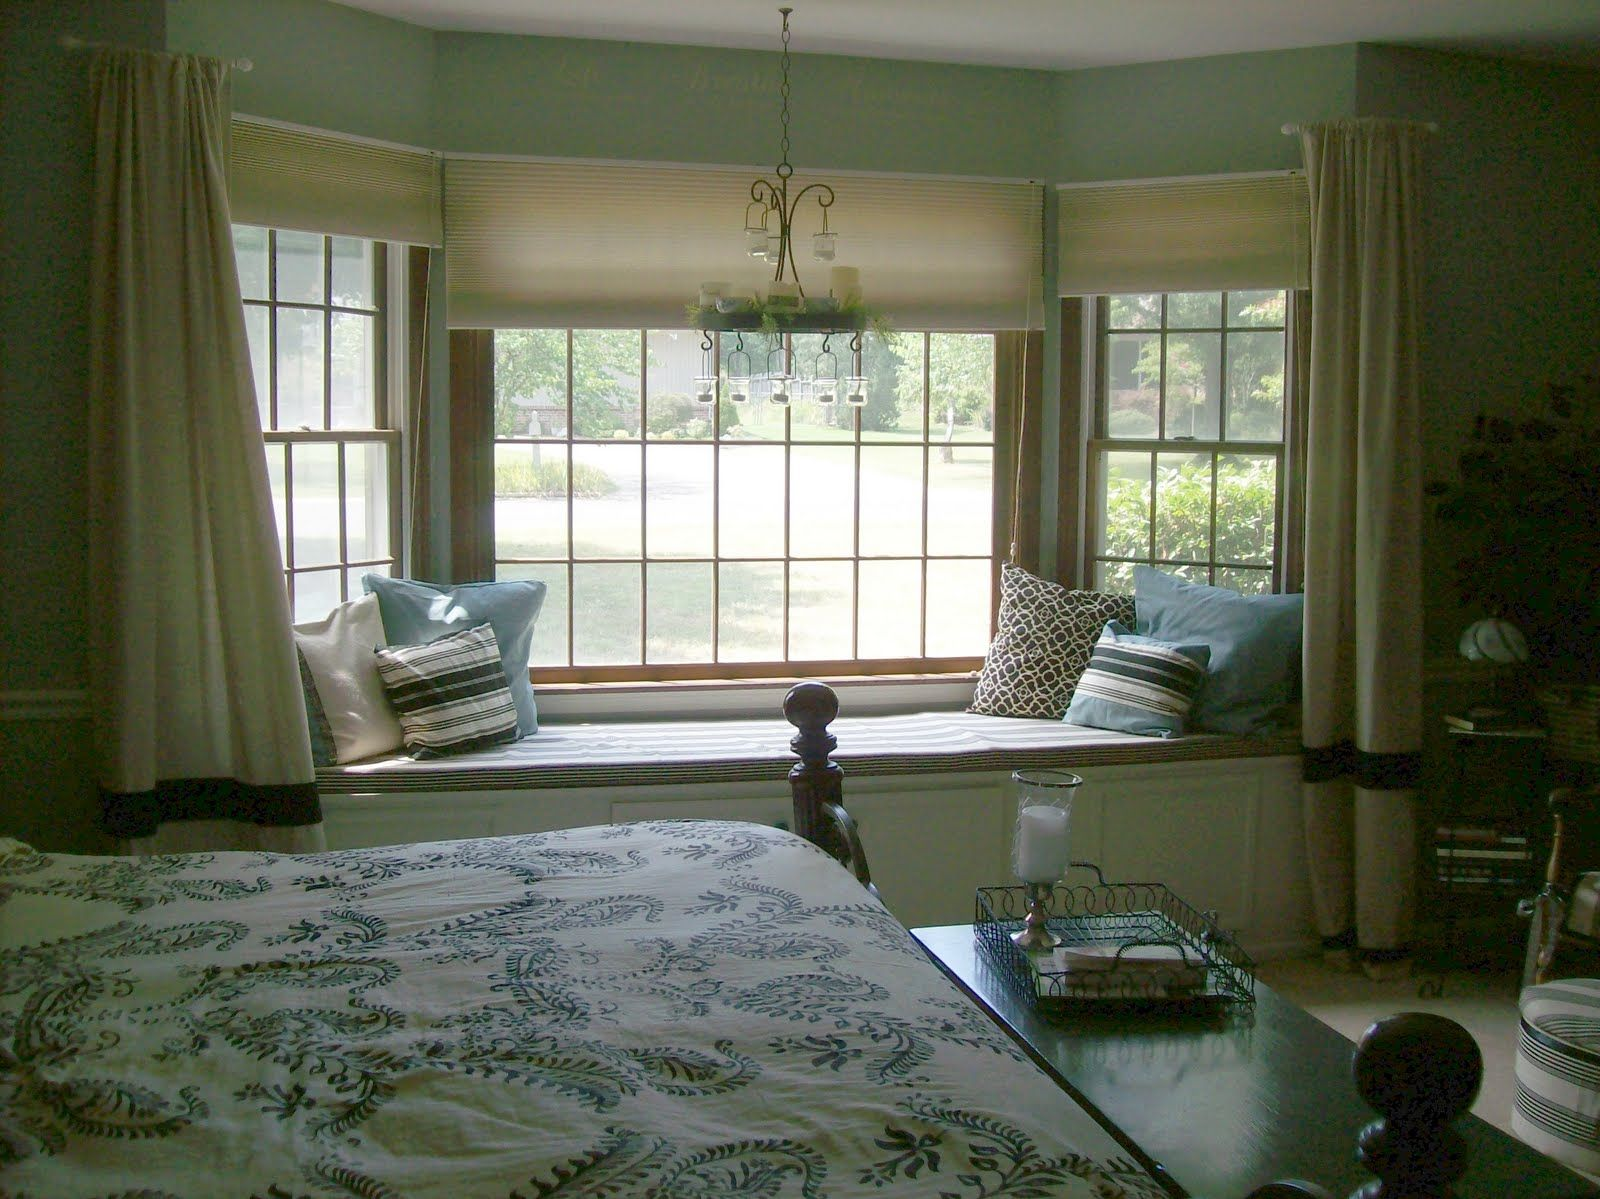 Bedroom Window Design Remarkable Brown Bedroom Bay Window Design Idea With Cream